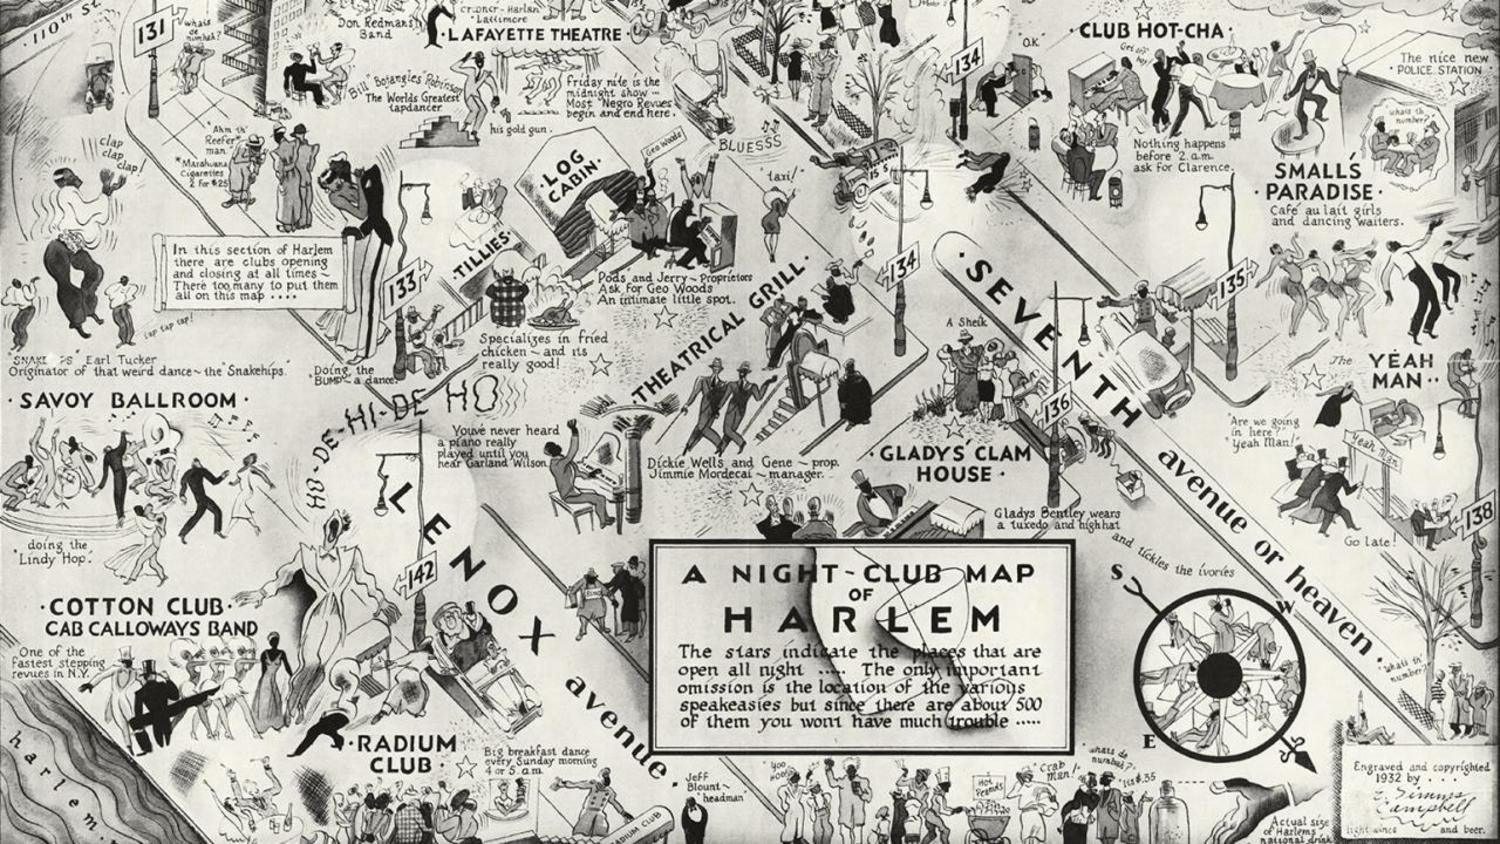 Harlem nights, An annotated map of the hippest, hottest nightspots in uptown jazz-age New York